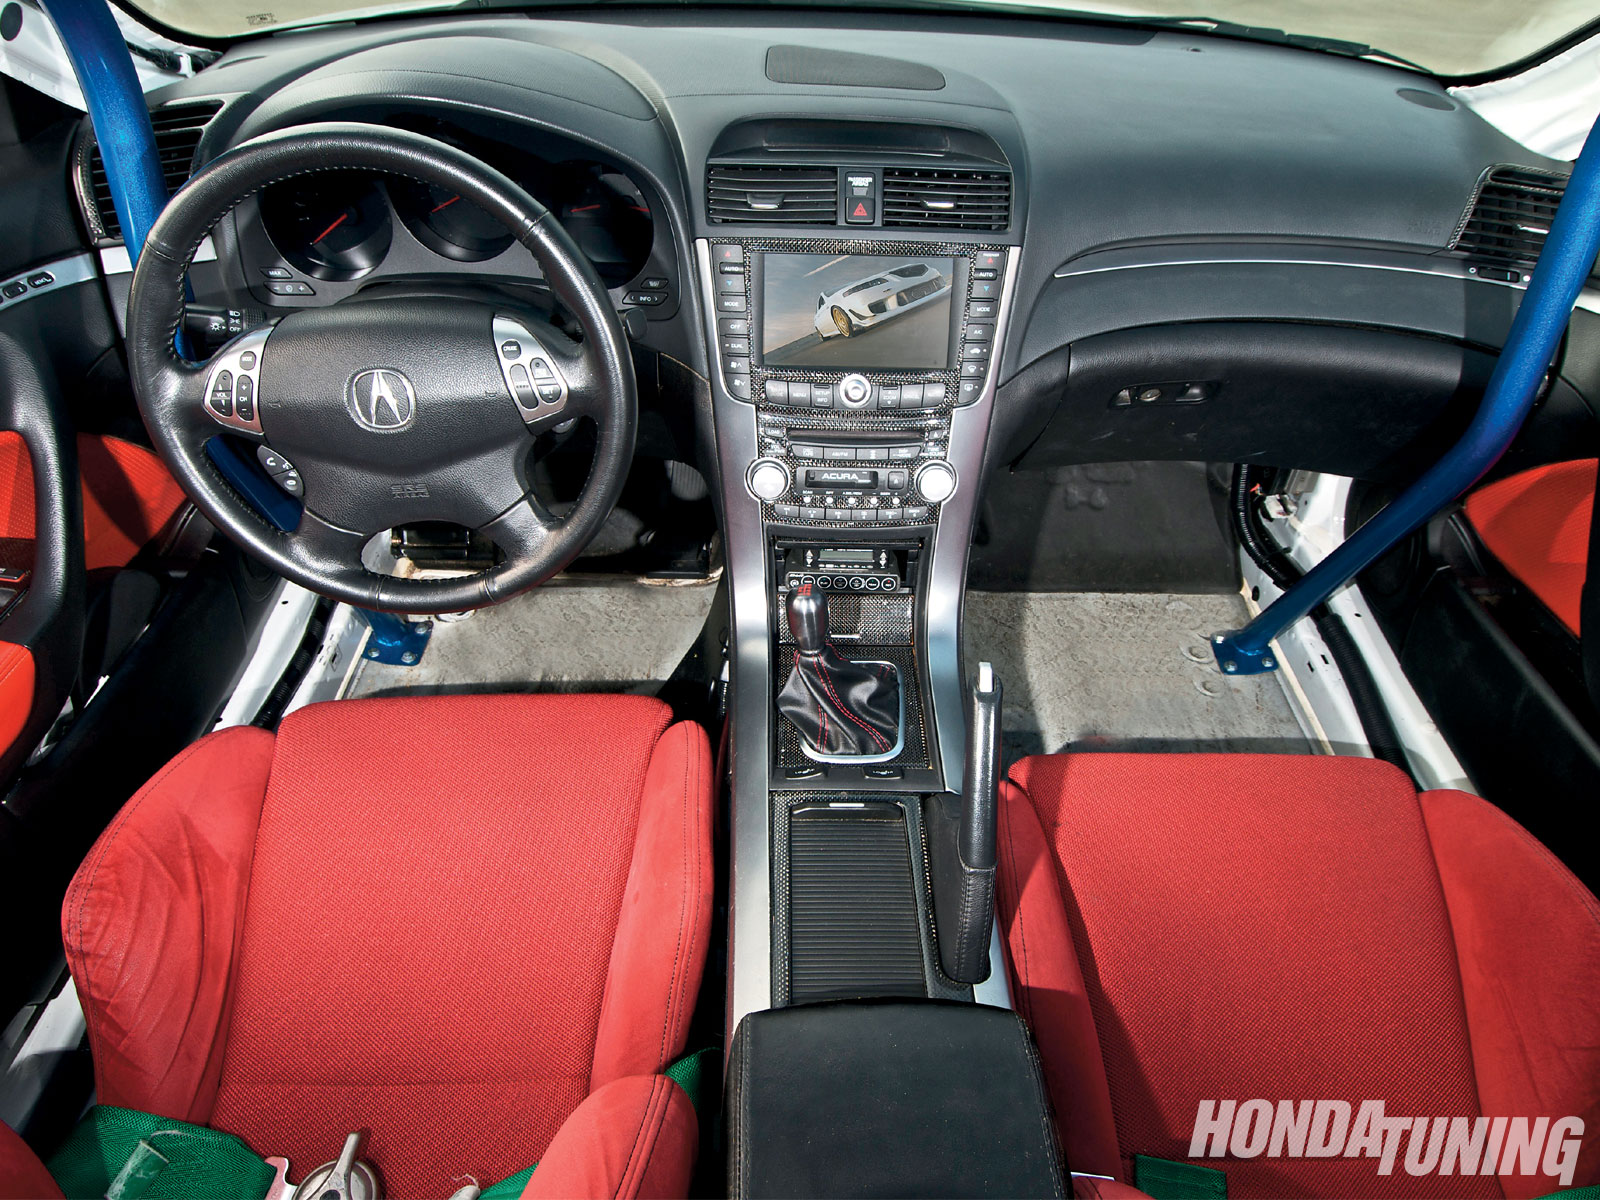 2005 Acura TL - Daring To Be Different - Honda Tuning Magazine